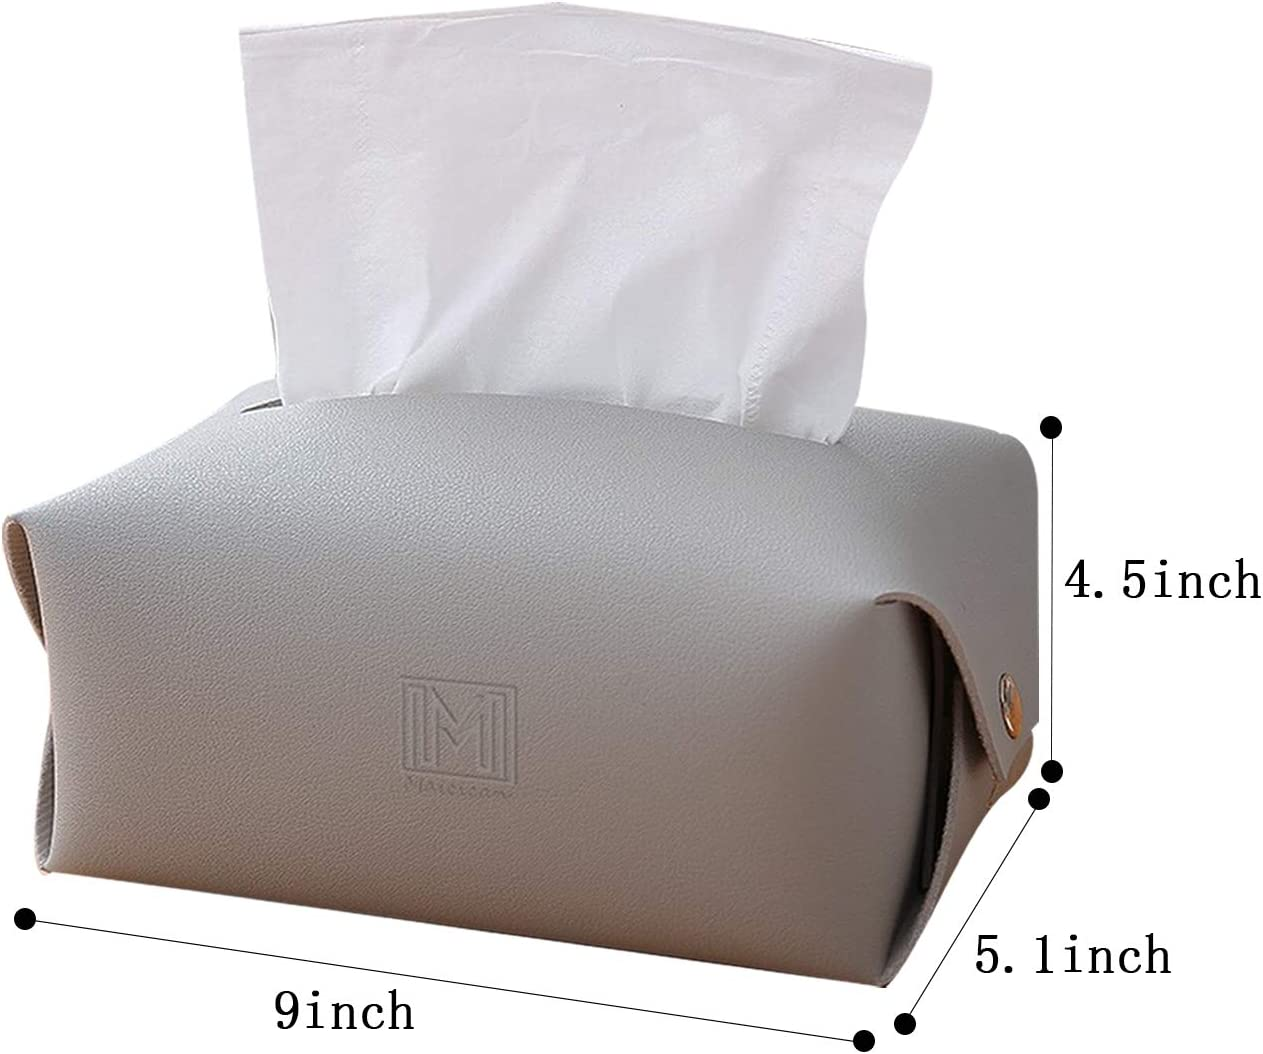 Maicican Stylish PU Leather Tissue Box Holder, Square Napkin Holder Pumping Paper Case Dispenser, Facial Tissue Holder for Bathroom, Bedroom or Office (Grey, Rectangle): Home & Kitchen